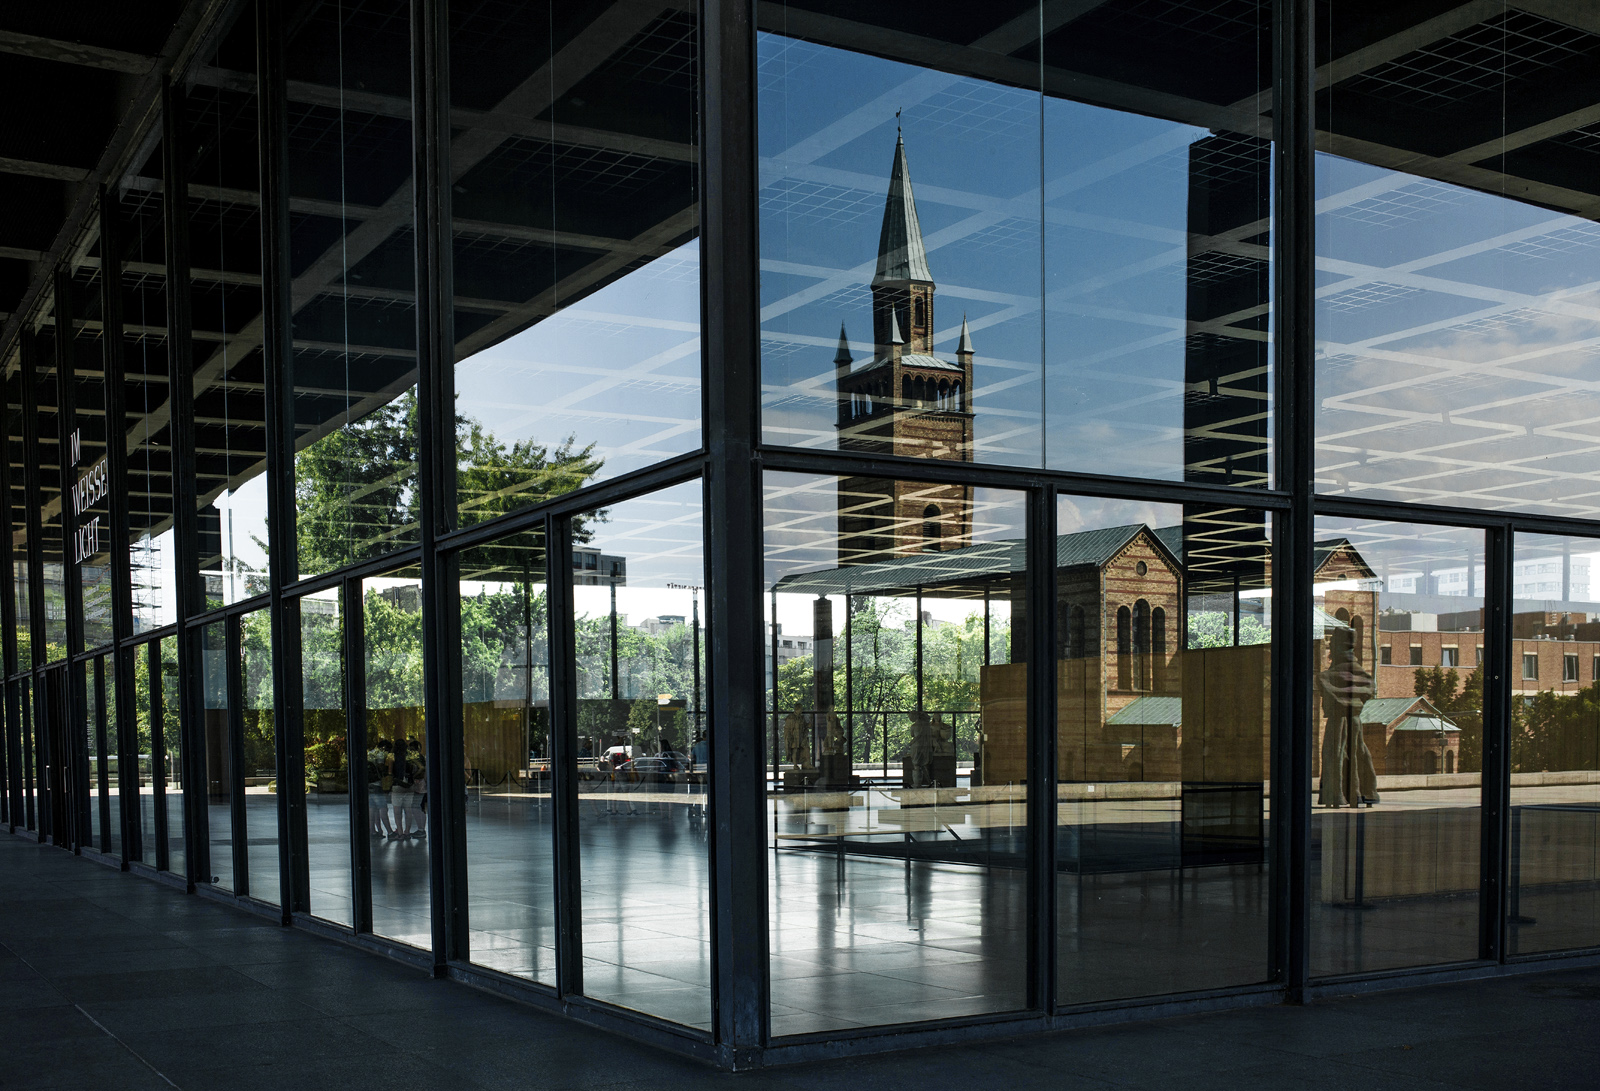 Neue Nationalgalerie 1 Berlin 2013